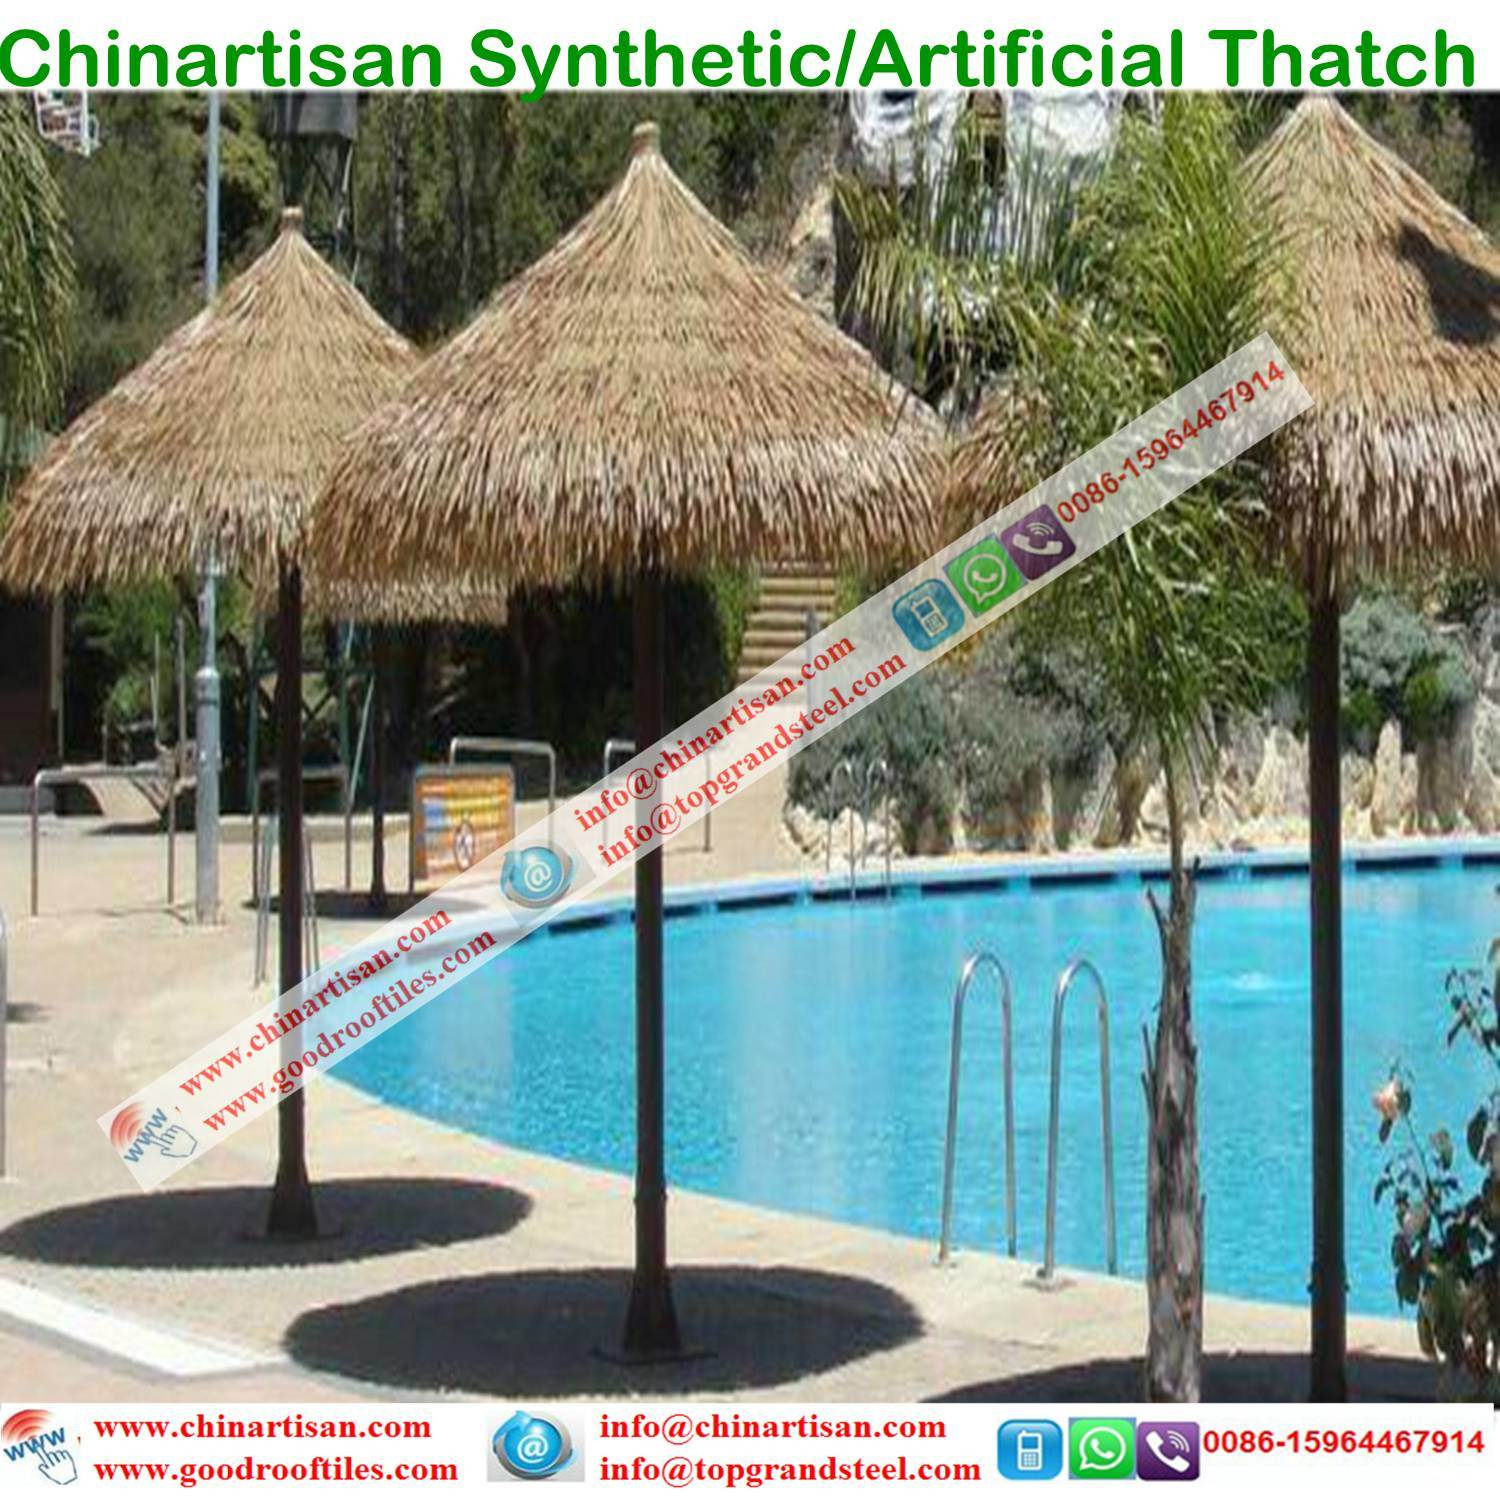 China Fireproof Artificial Africa Thatch Roof Bali Tiki Bar Hawaii Hut Synthetic Thatched Cottage Islands Resorts DIY Backyard